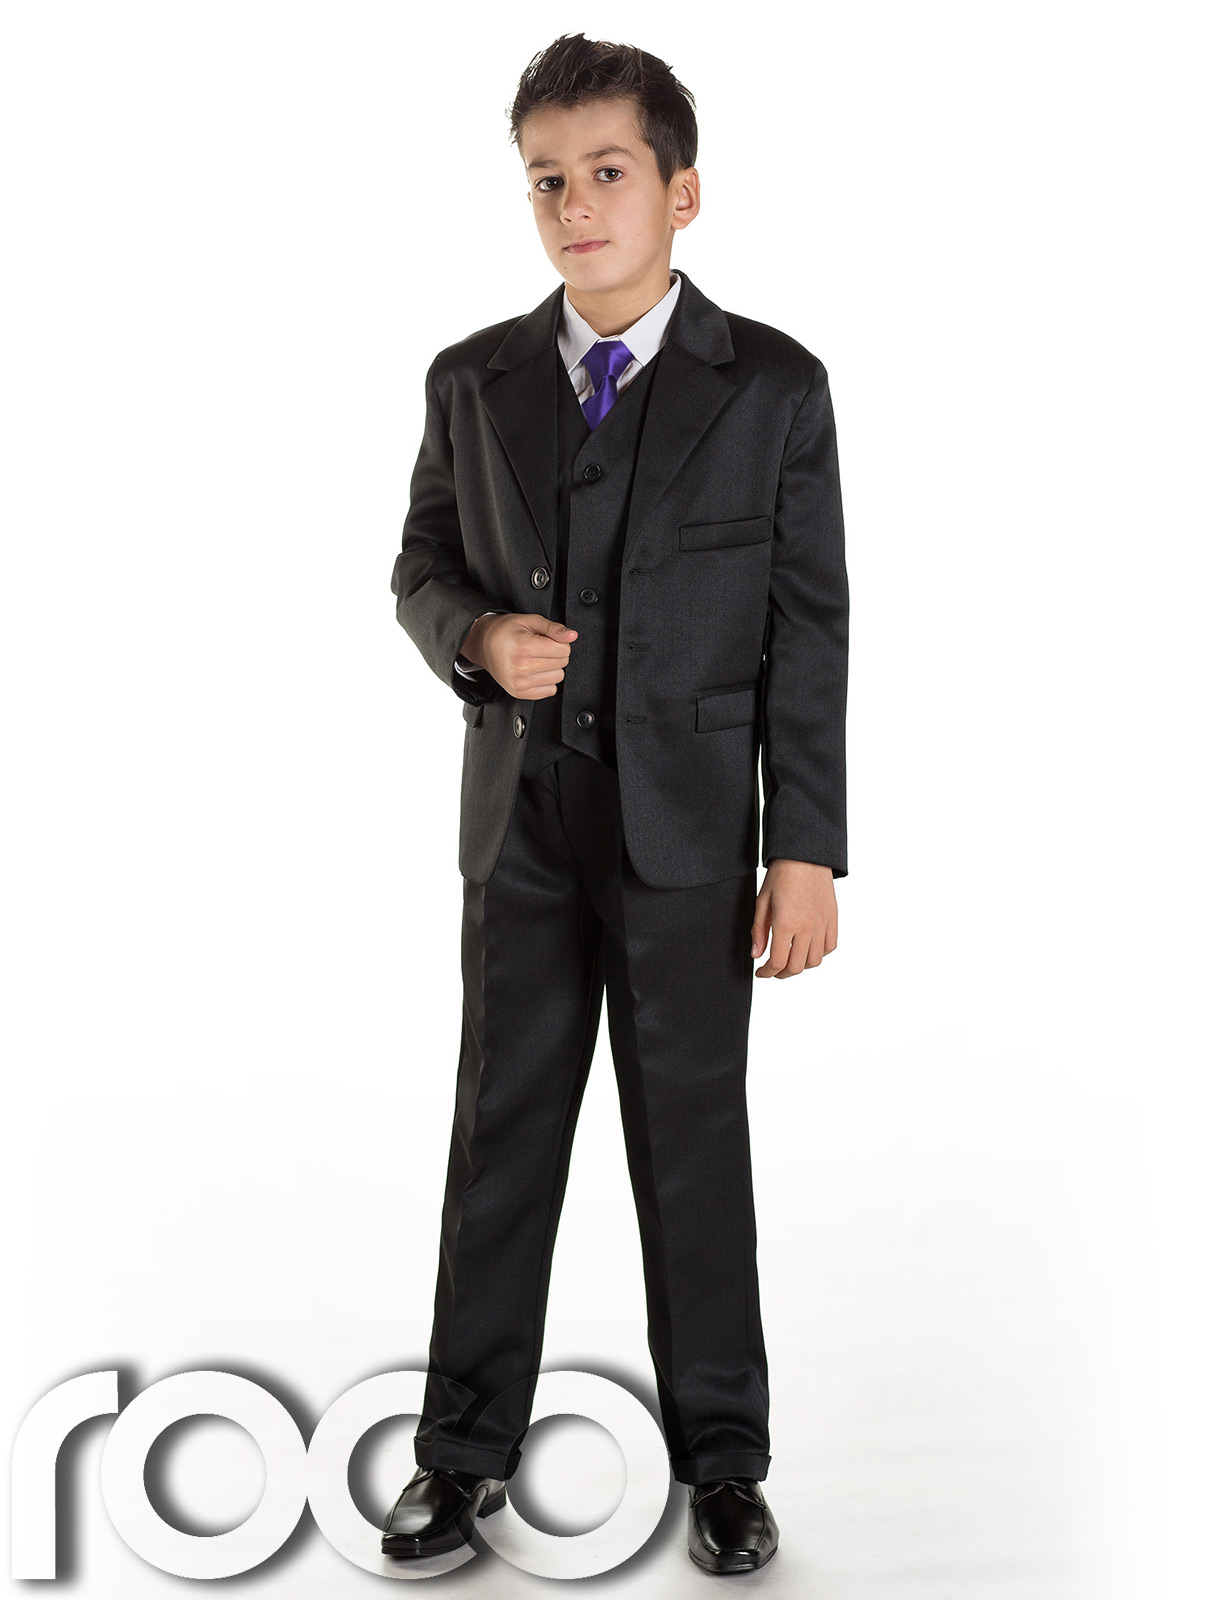 Black N Bianco Boys Suit and Tie in Black Complete Outfit (4) Sold by House Bianco. $ $ - $ You'll find an impressive selection of formal shirts and boys' suits at Sears in a wide range of sizes, patterns and colors. Make sure your child looks dapper at any event with sharp outfits that will turn heads wherever he goes.